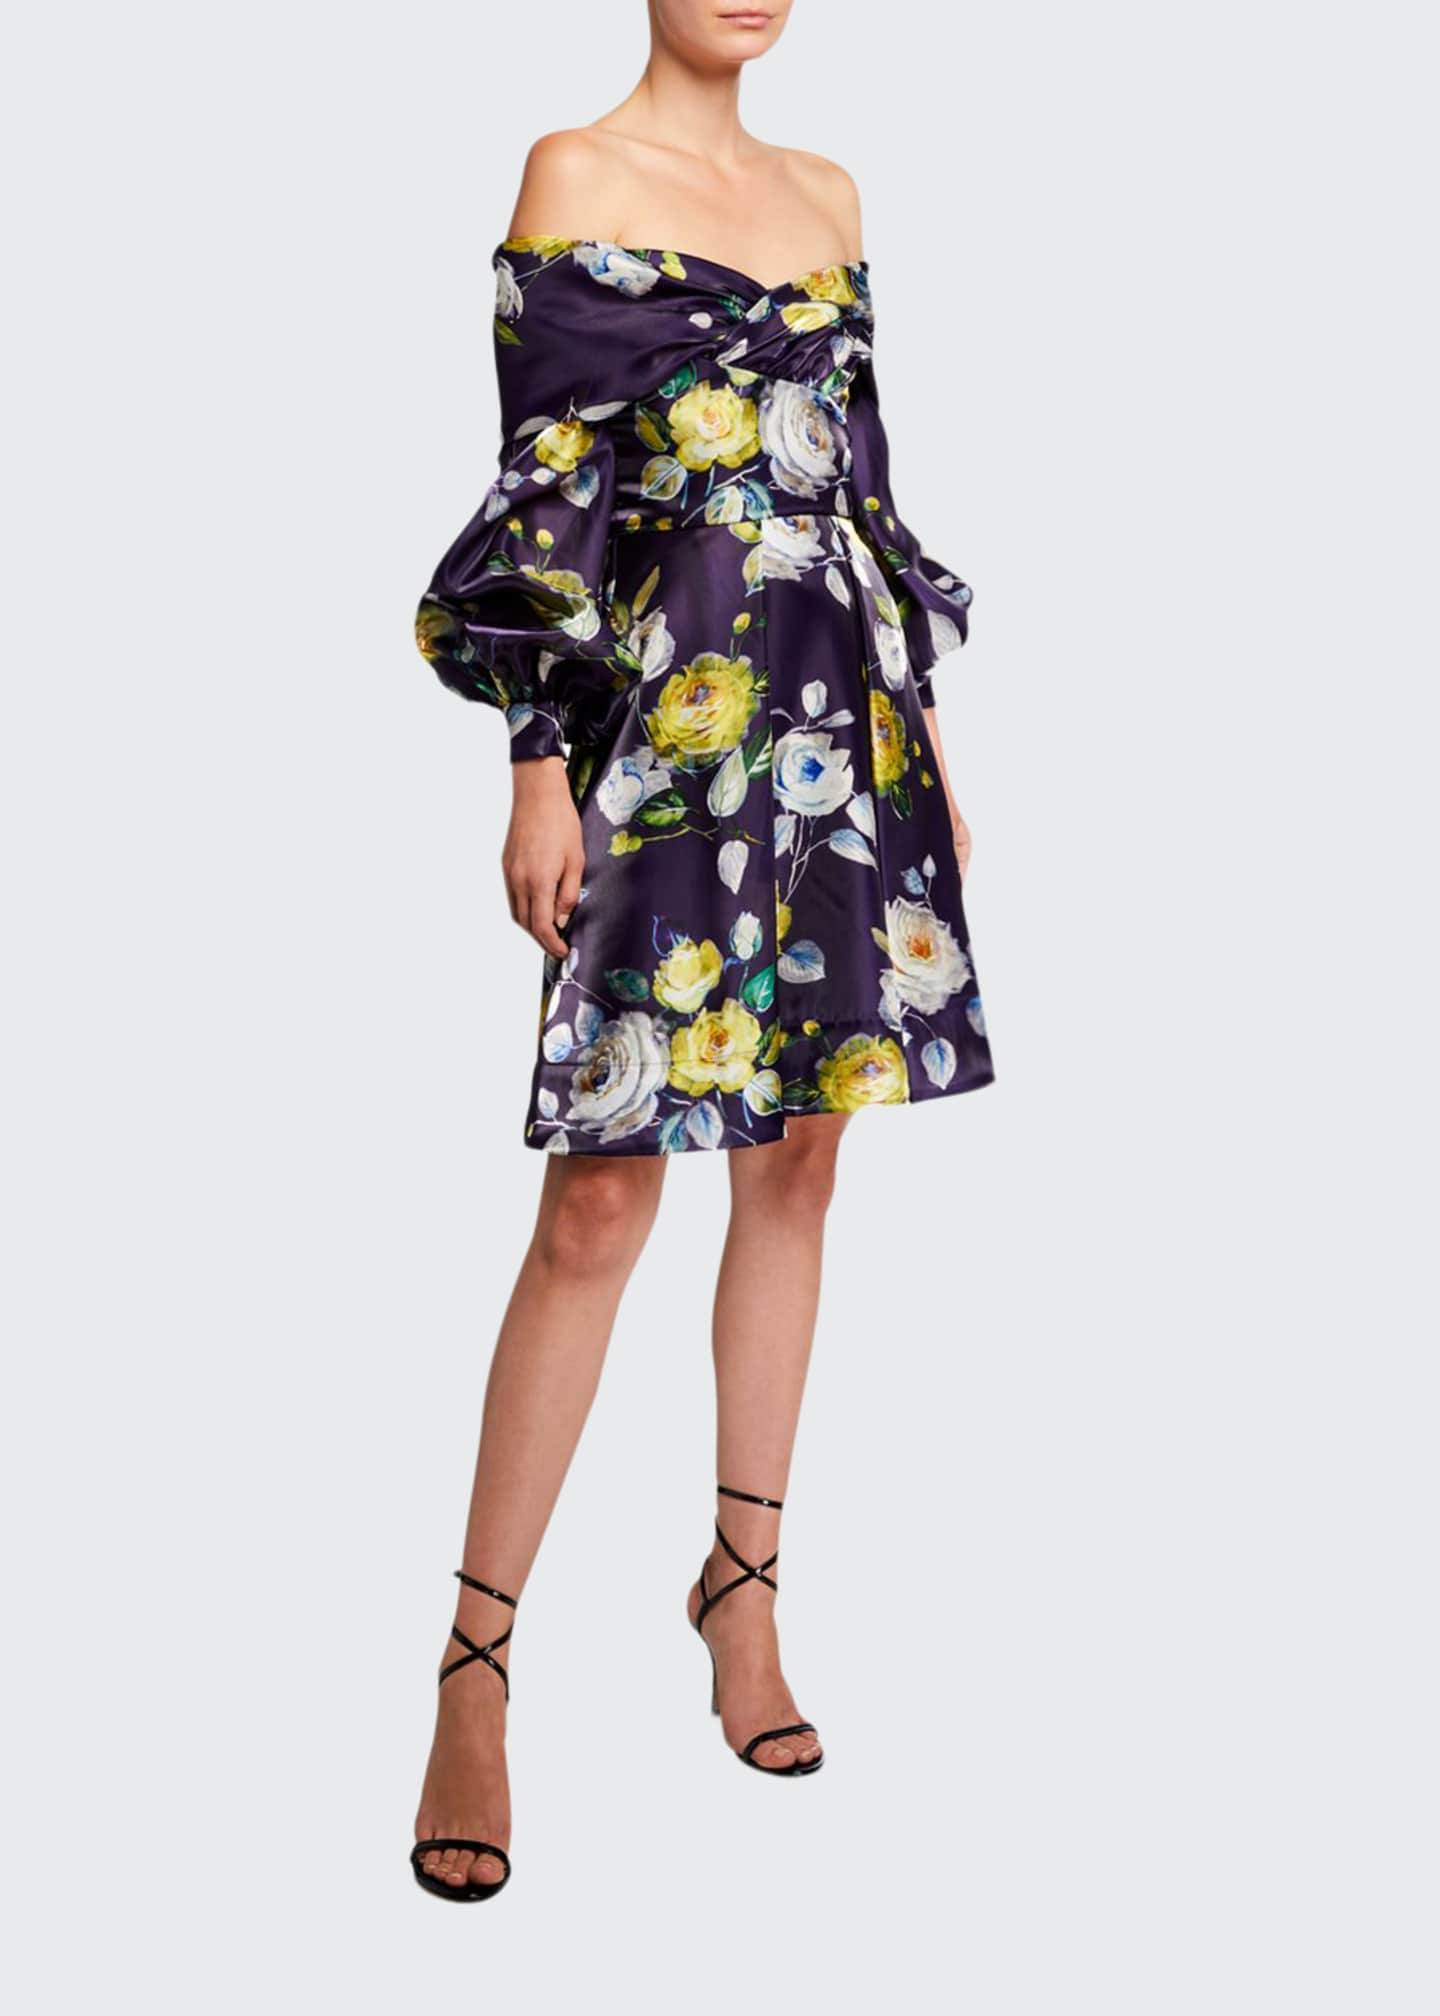 flor et.al Abba Neon Floral Off-the-Shoulder Bishop-Sleeve Liquid